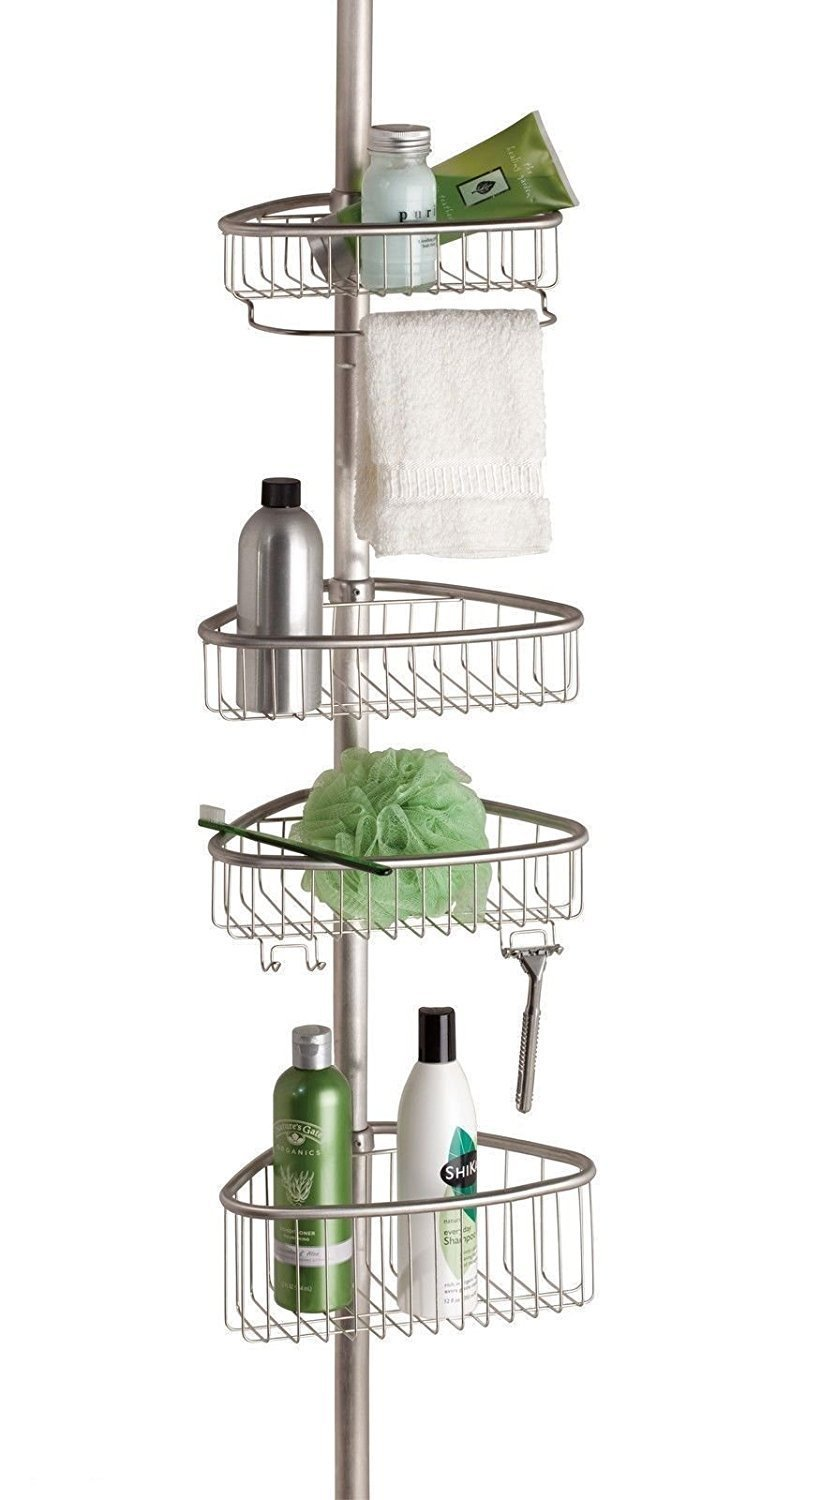 Non Rust Bathroom Telescopic Corner Shelf Storage 4 Tier Shower Caddy Organiser (Matte Silver) 1st Choice 5056089512670